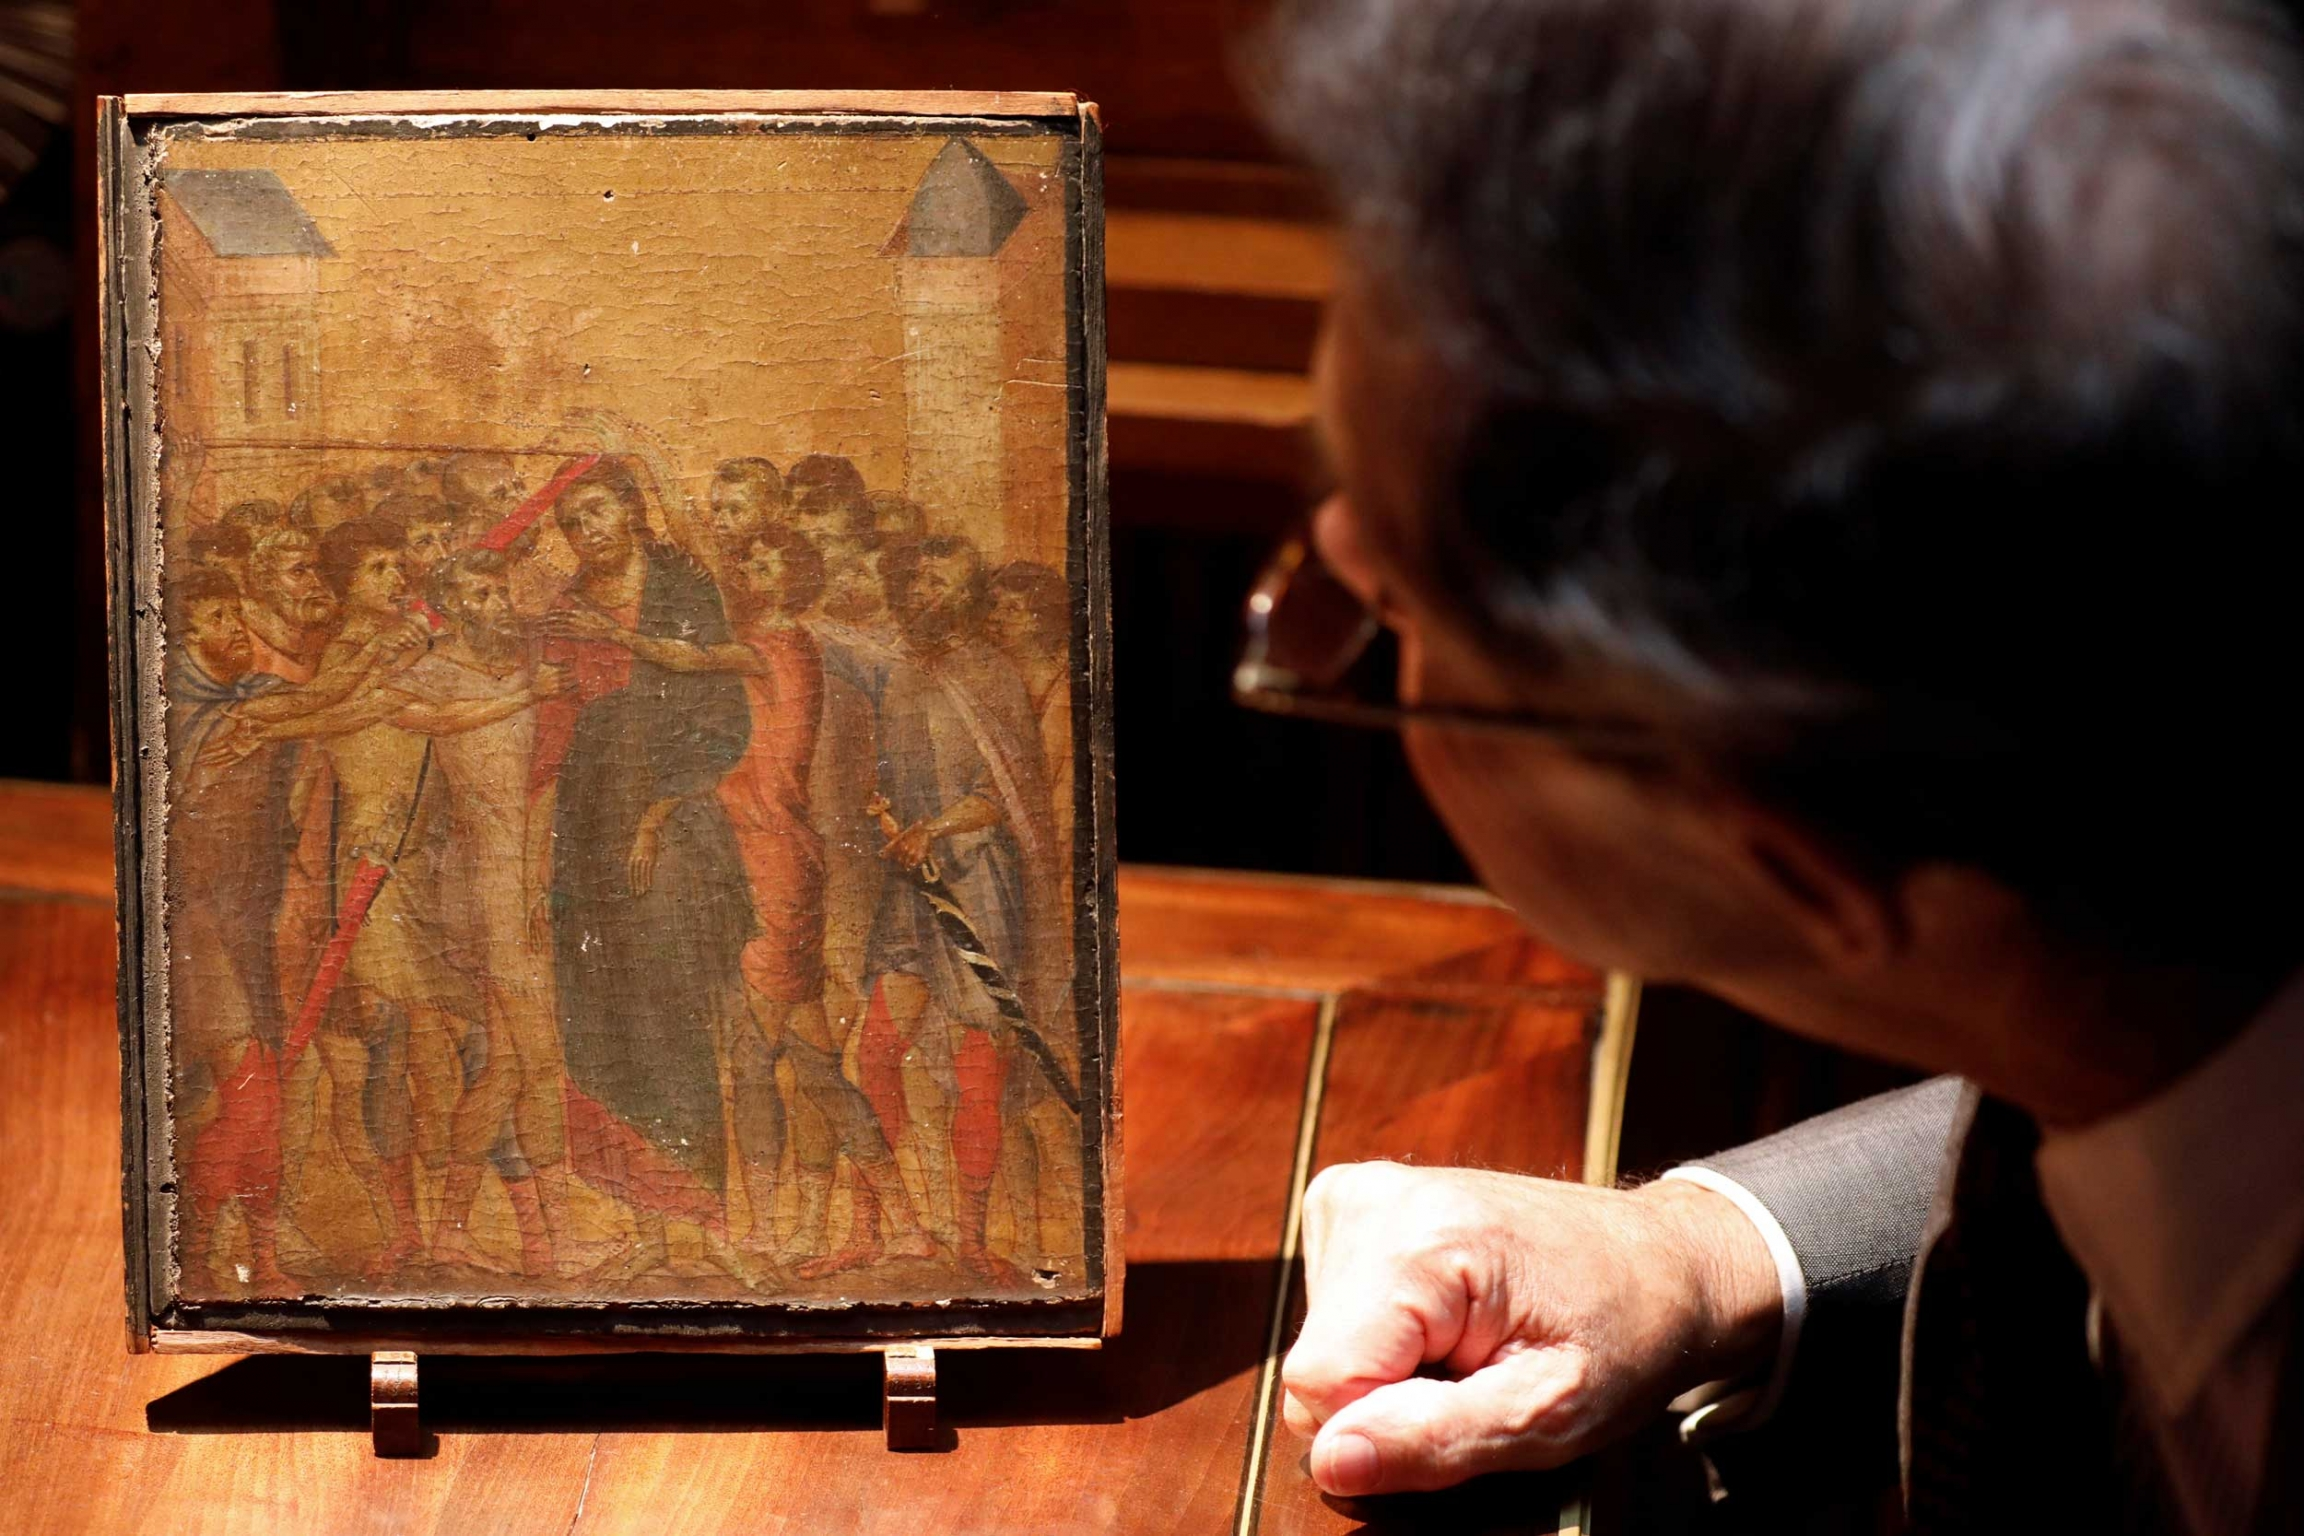 A man looks closely at a small religious image showing Christ surrounded by other men